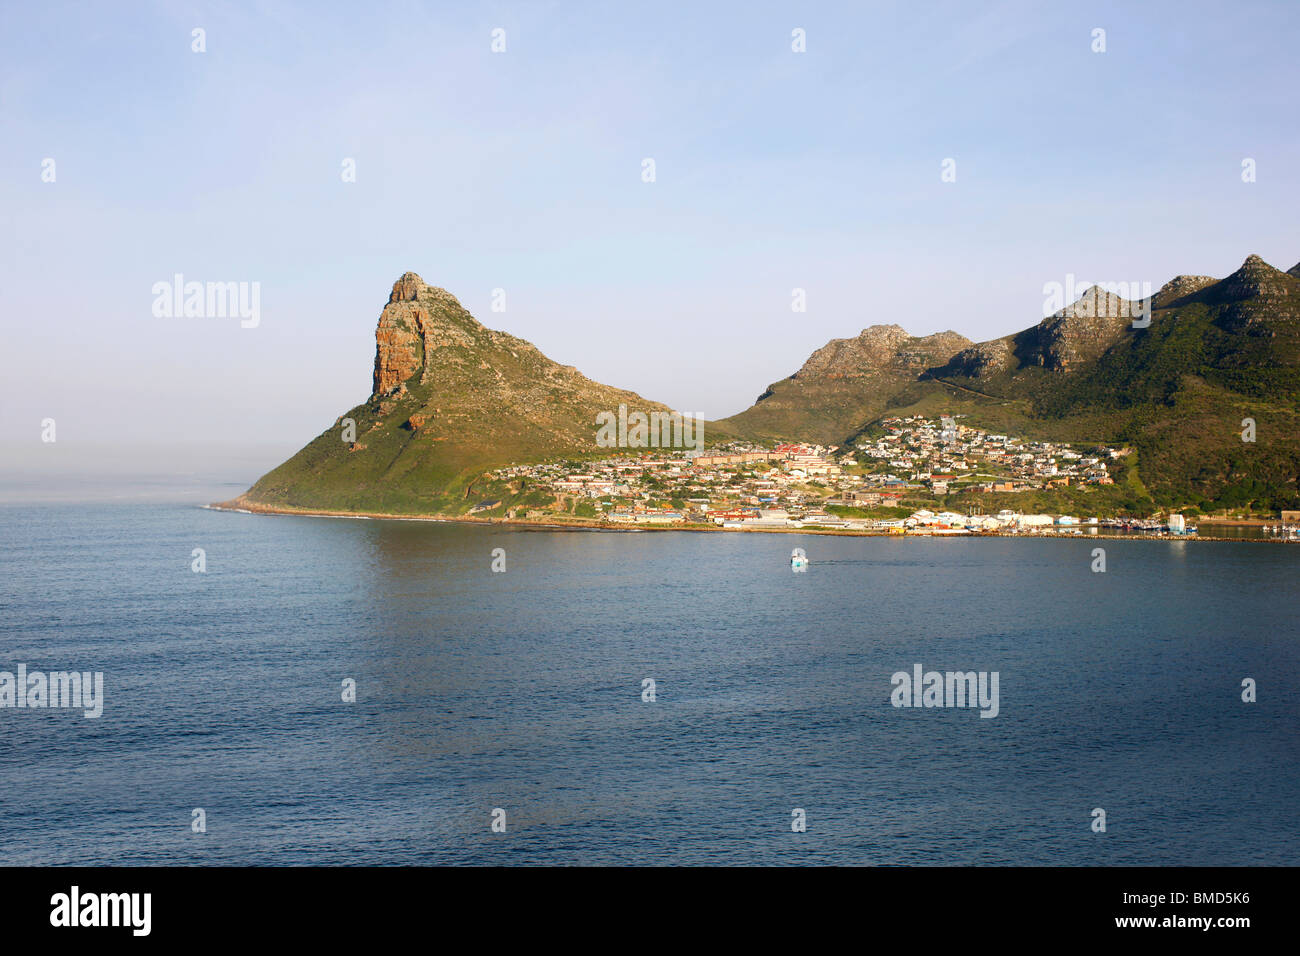 The Sentinel, Hout Bay - Stock Image